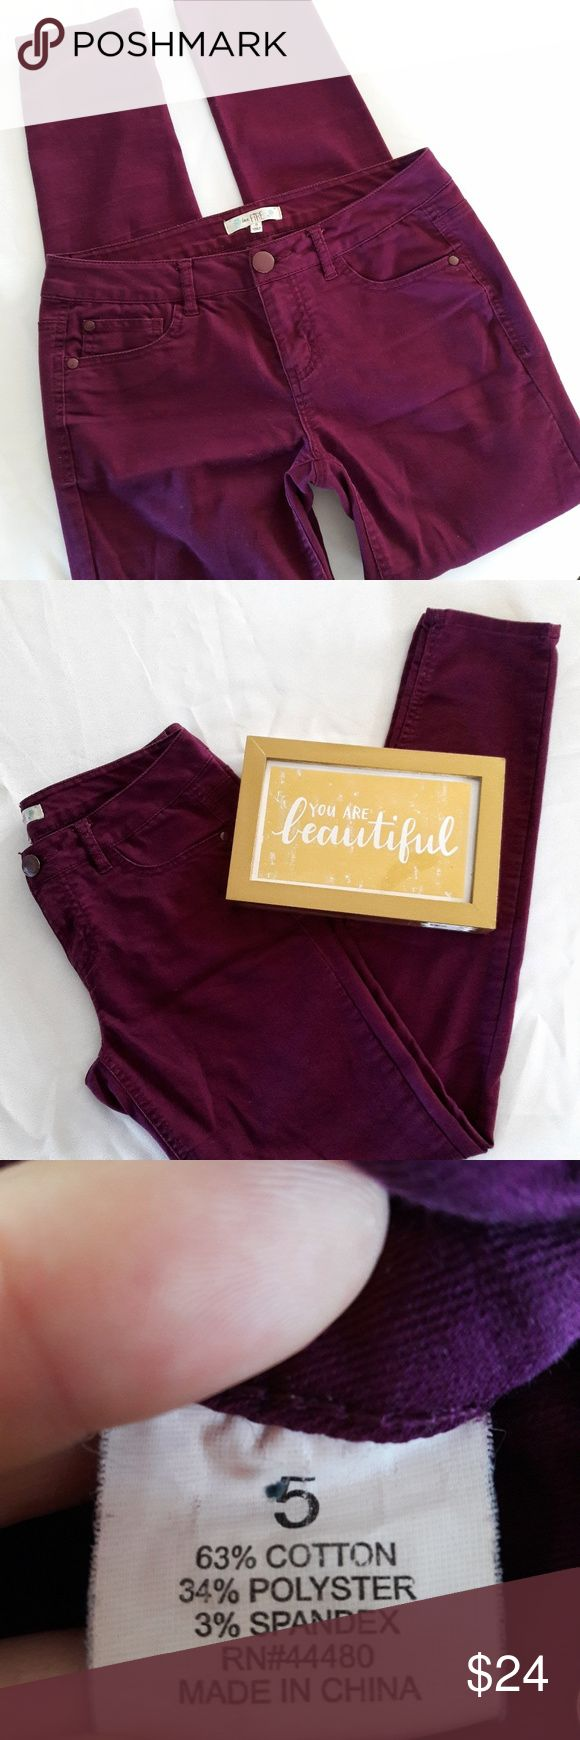 """Love Fire Maroon Skinny Jeans Juniors 5 Maroon Skinny Jeans by Love Fire. Juniors size 5, they measure 14.5"""" across the waist and 29"""" inseam.   Material is 63% cotton, 34% polyester, and 3% spandex.   This is an EUC item: it has been inspected for quality and wear.   Bundle + save! Offers are welcome :) Love Fire Jeans Skinny"""